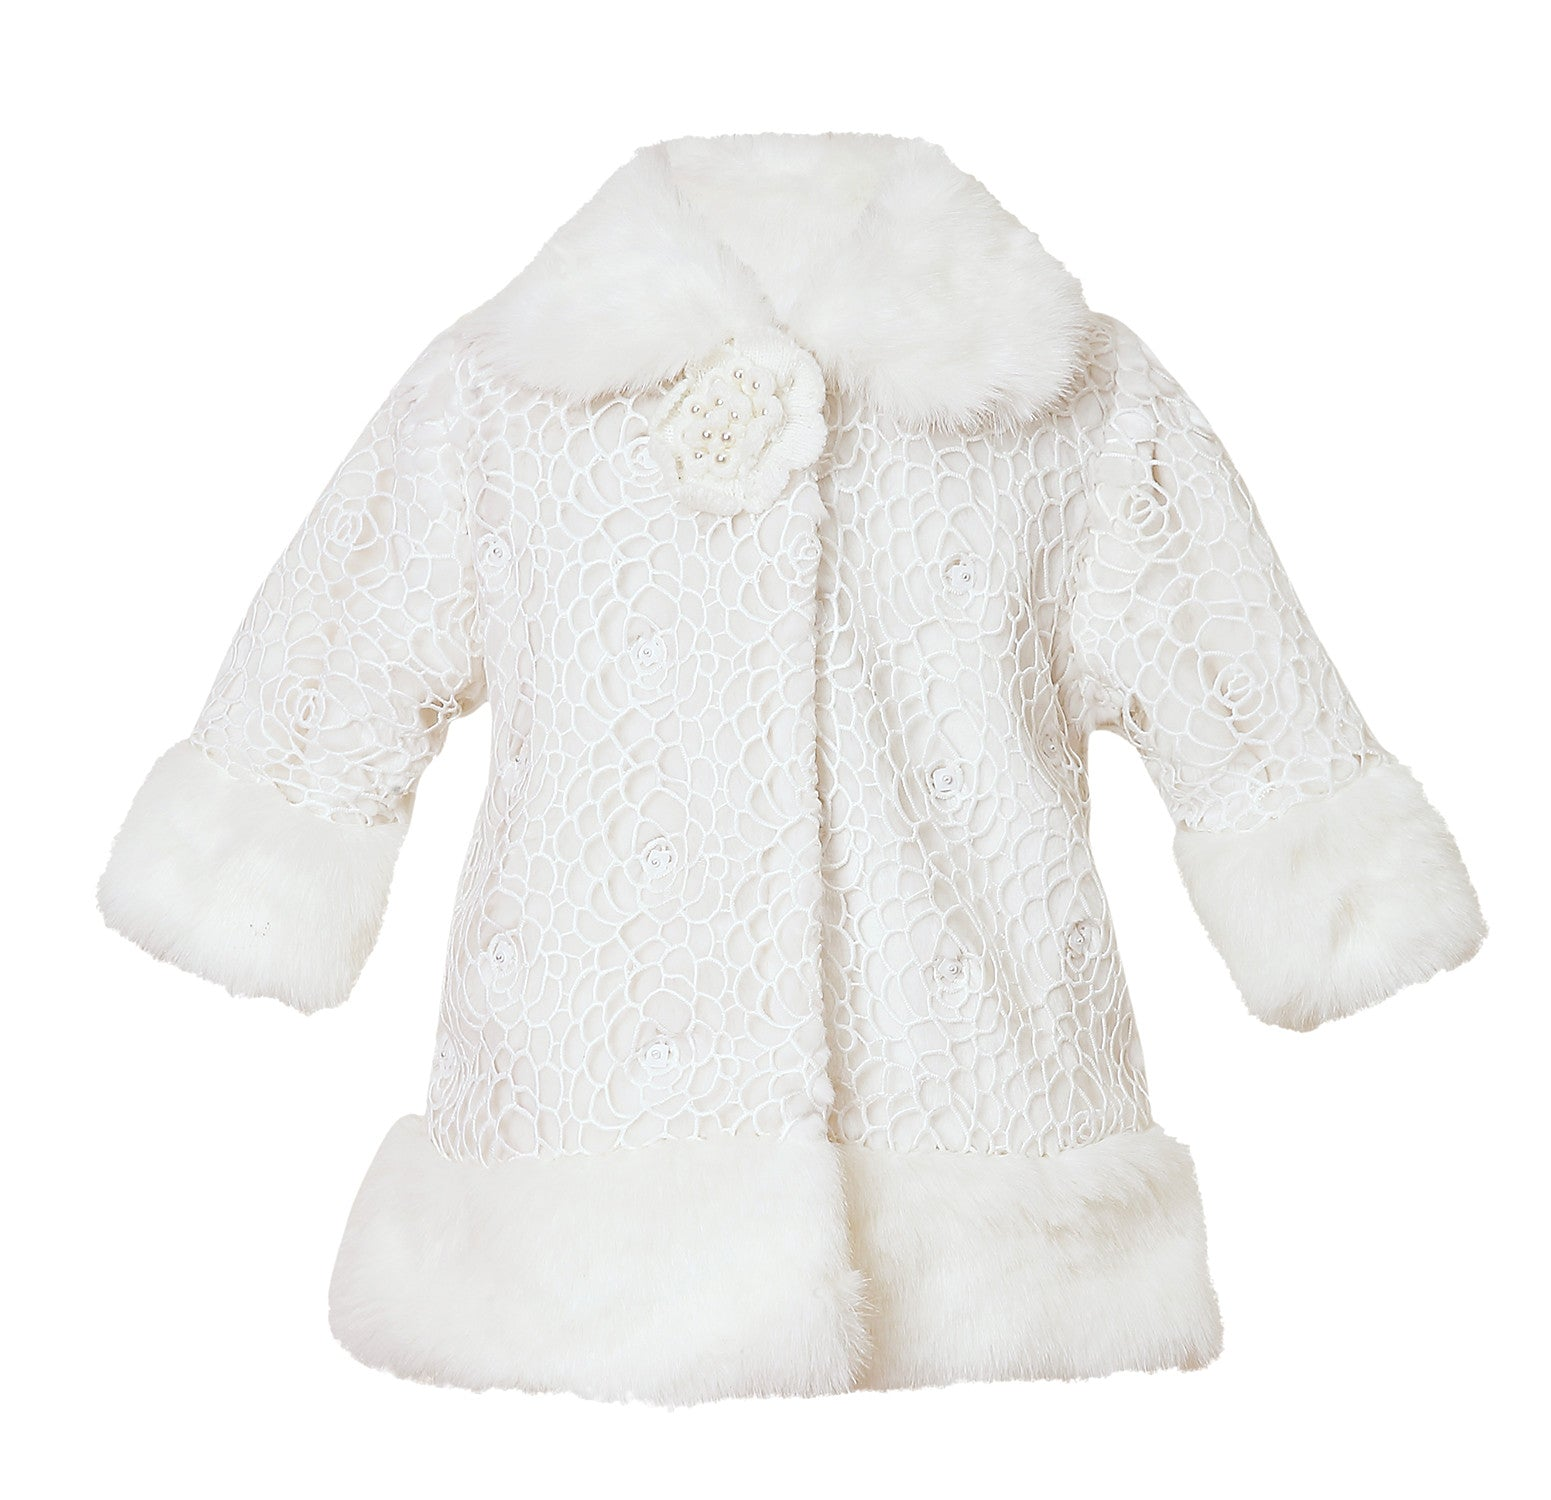 Fur Coat with emroidery